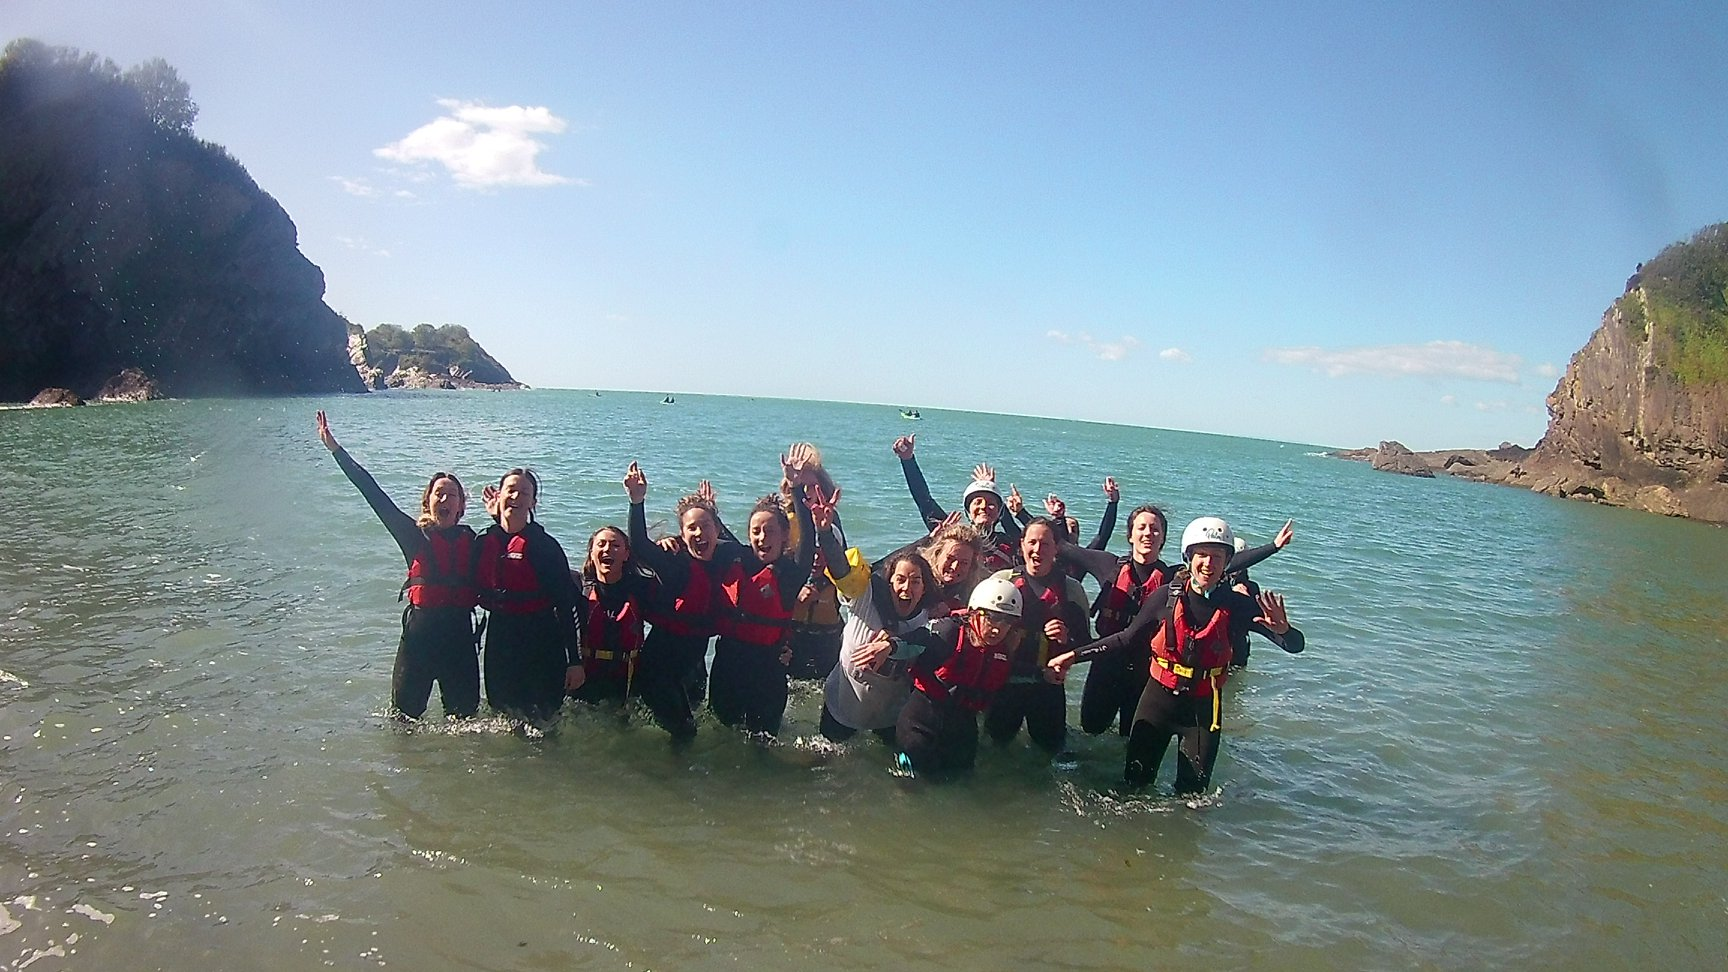 hen party, SUP, stand up paddleboards, surf, watersports, adventure sport, fun